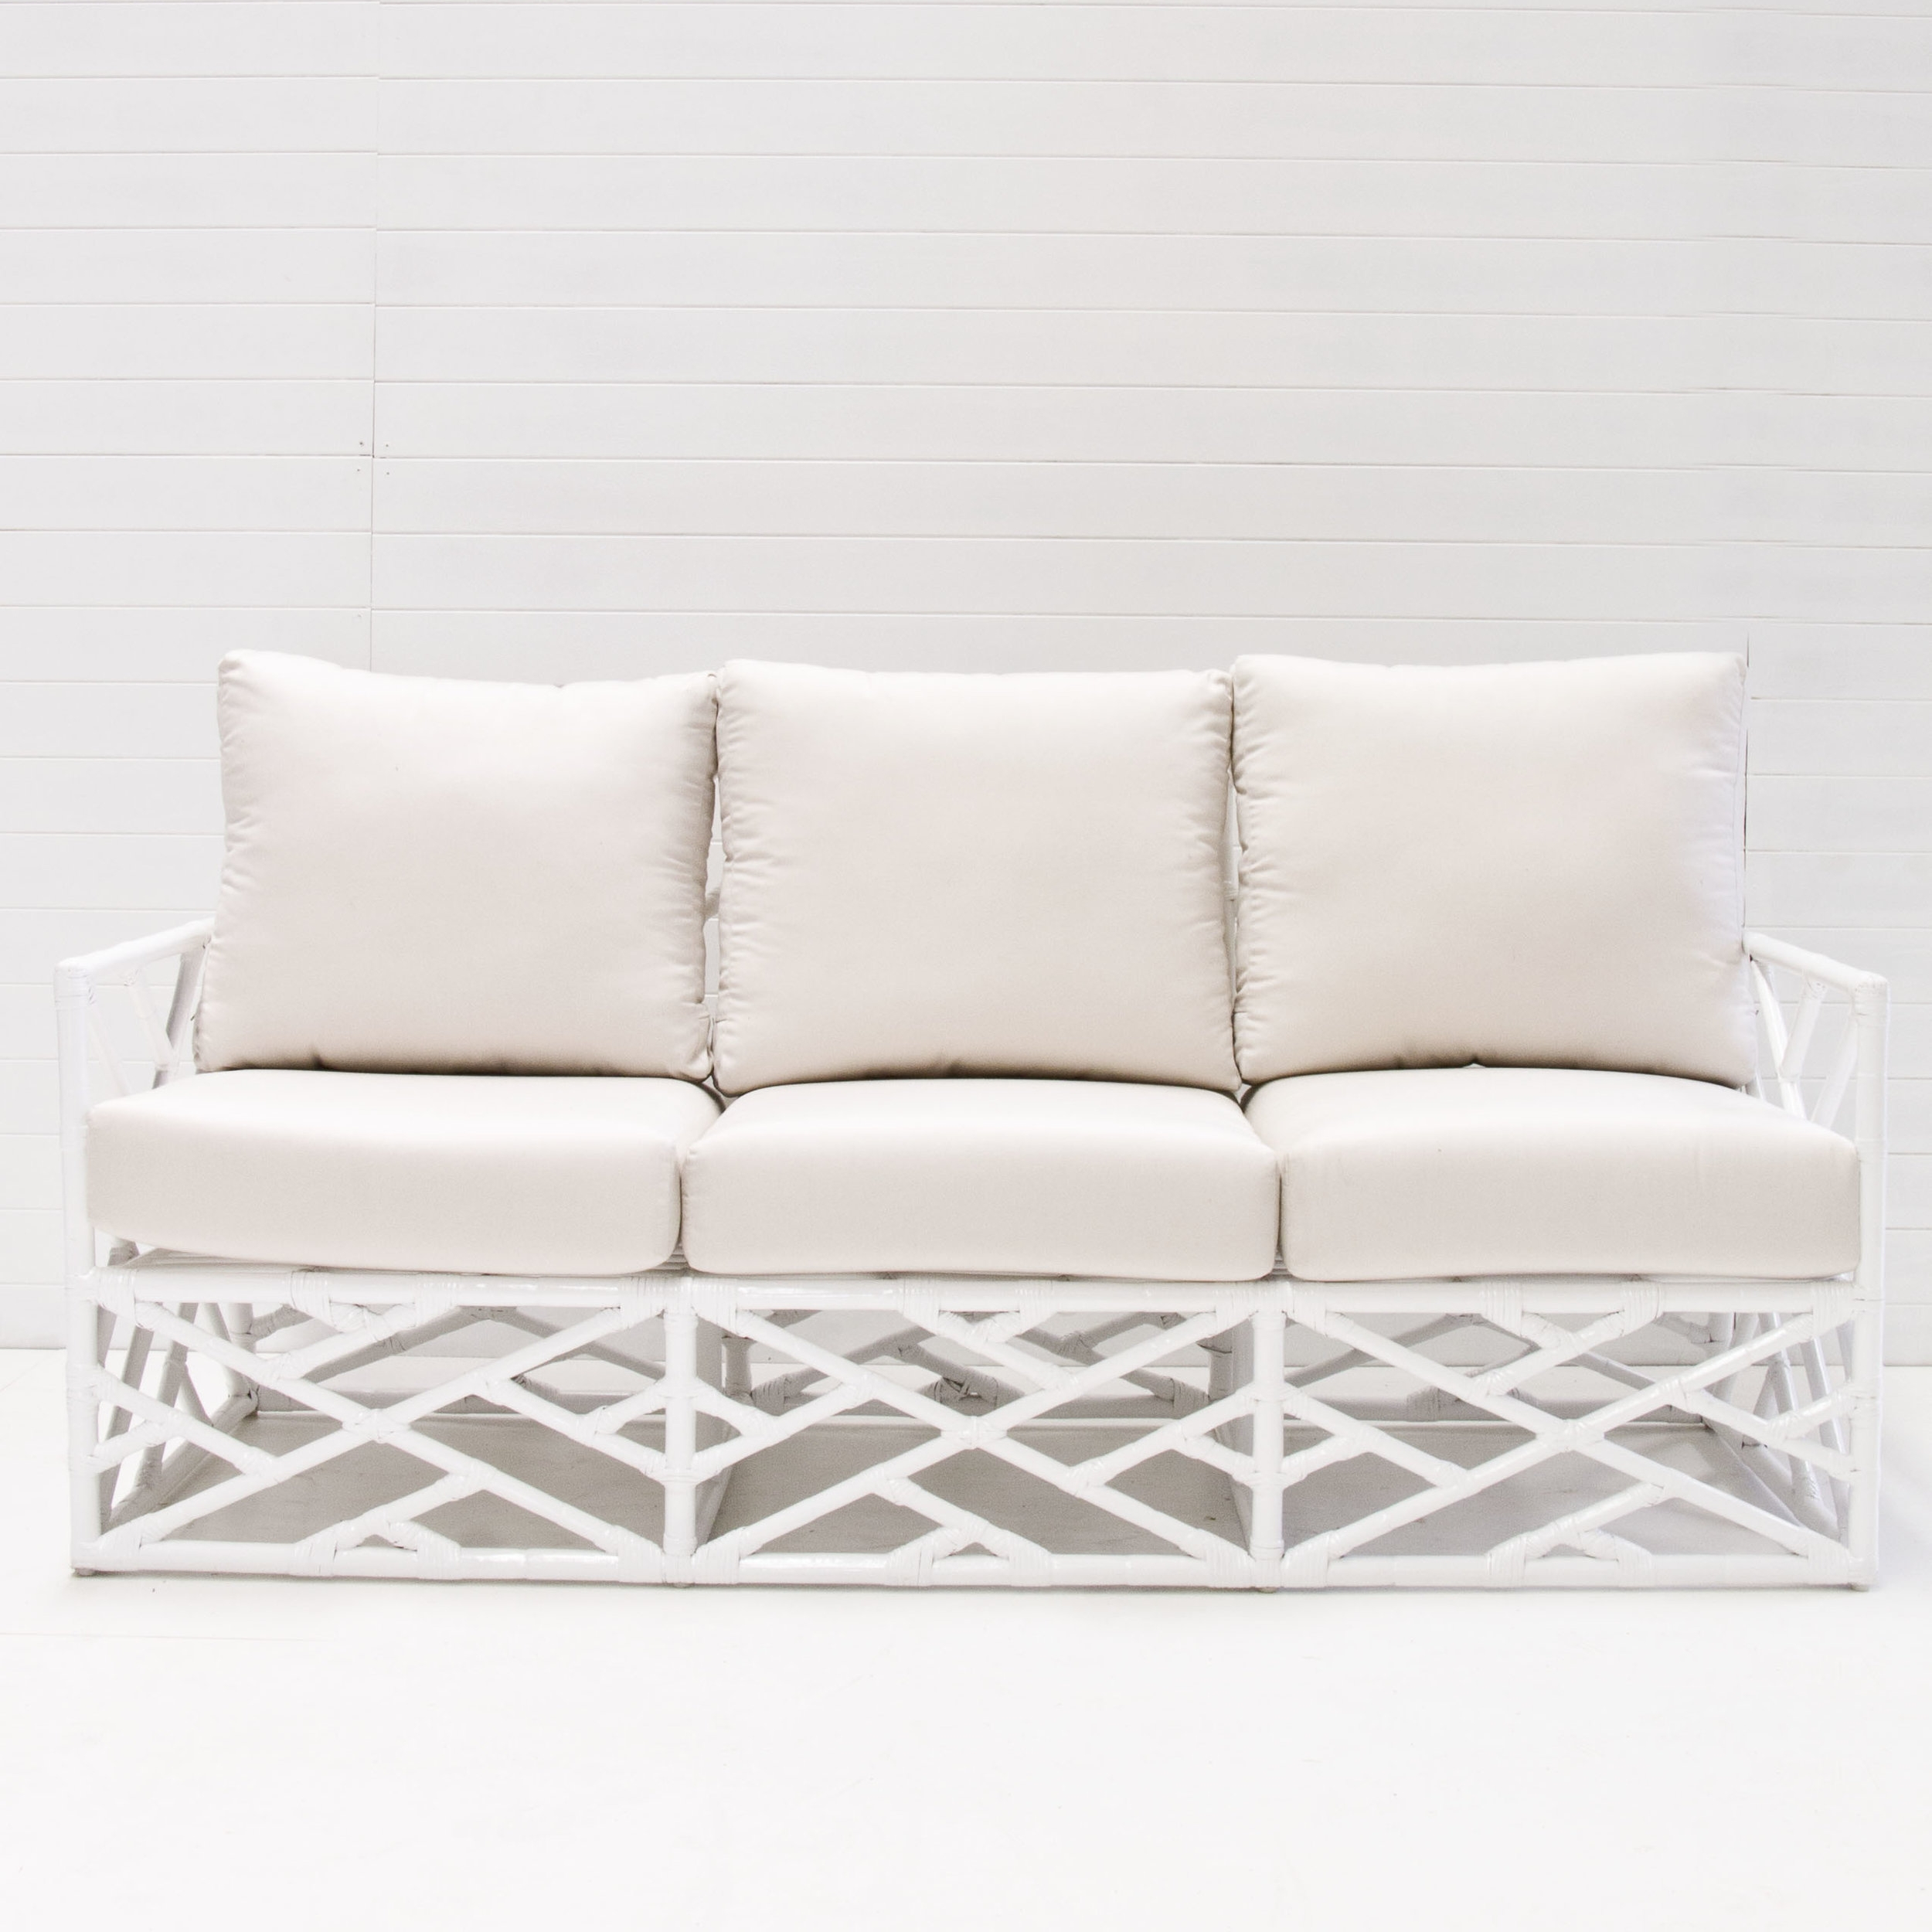 WHITE SUMMER LOUNGE